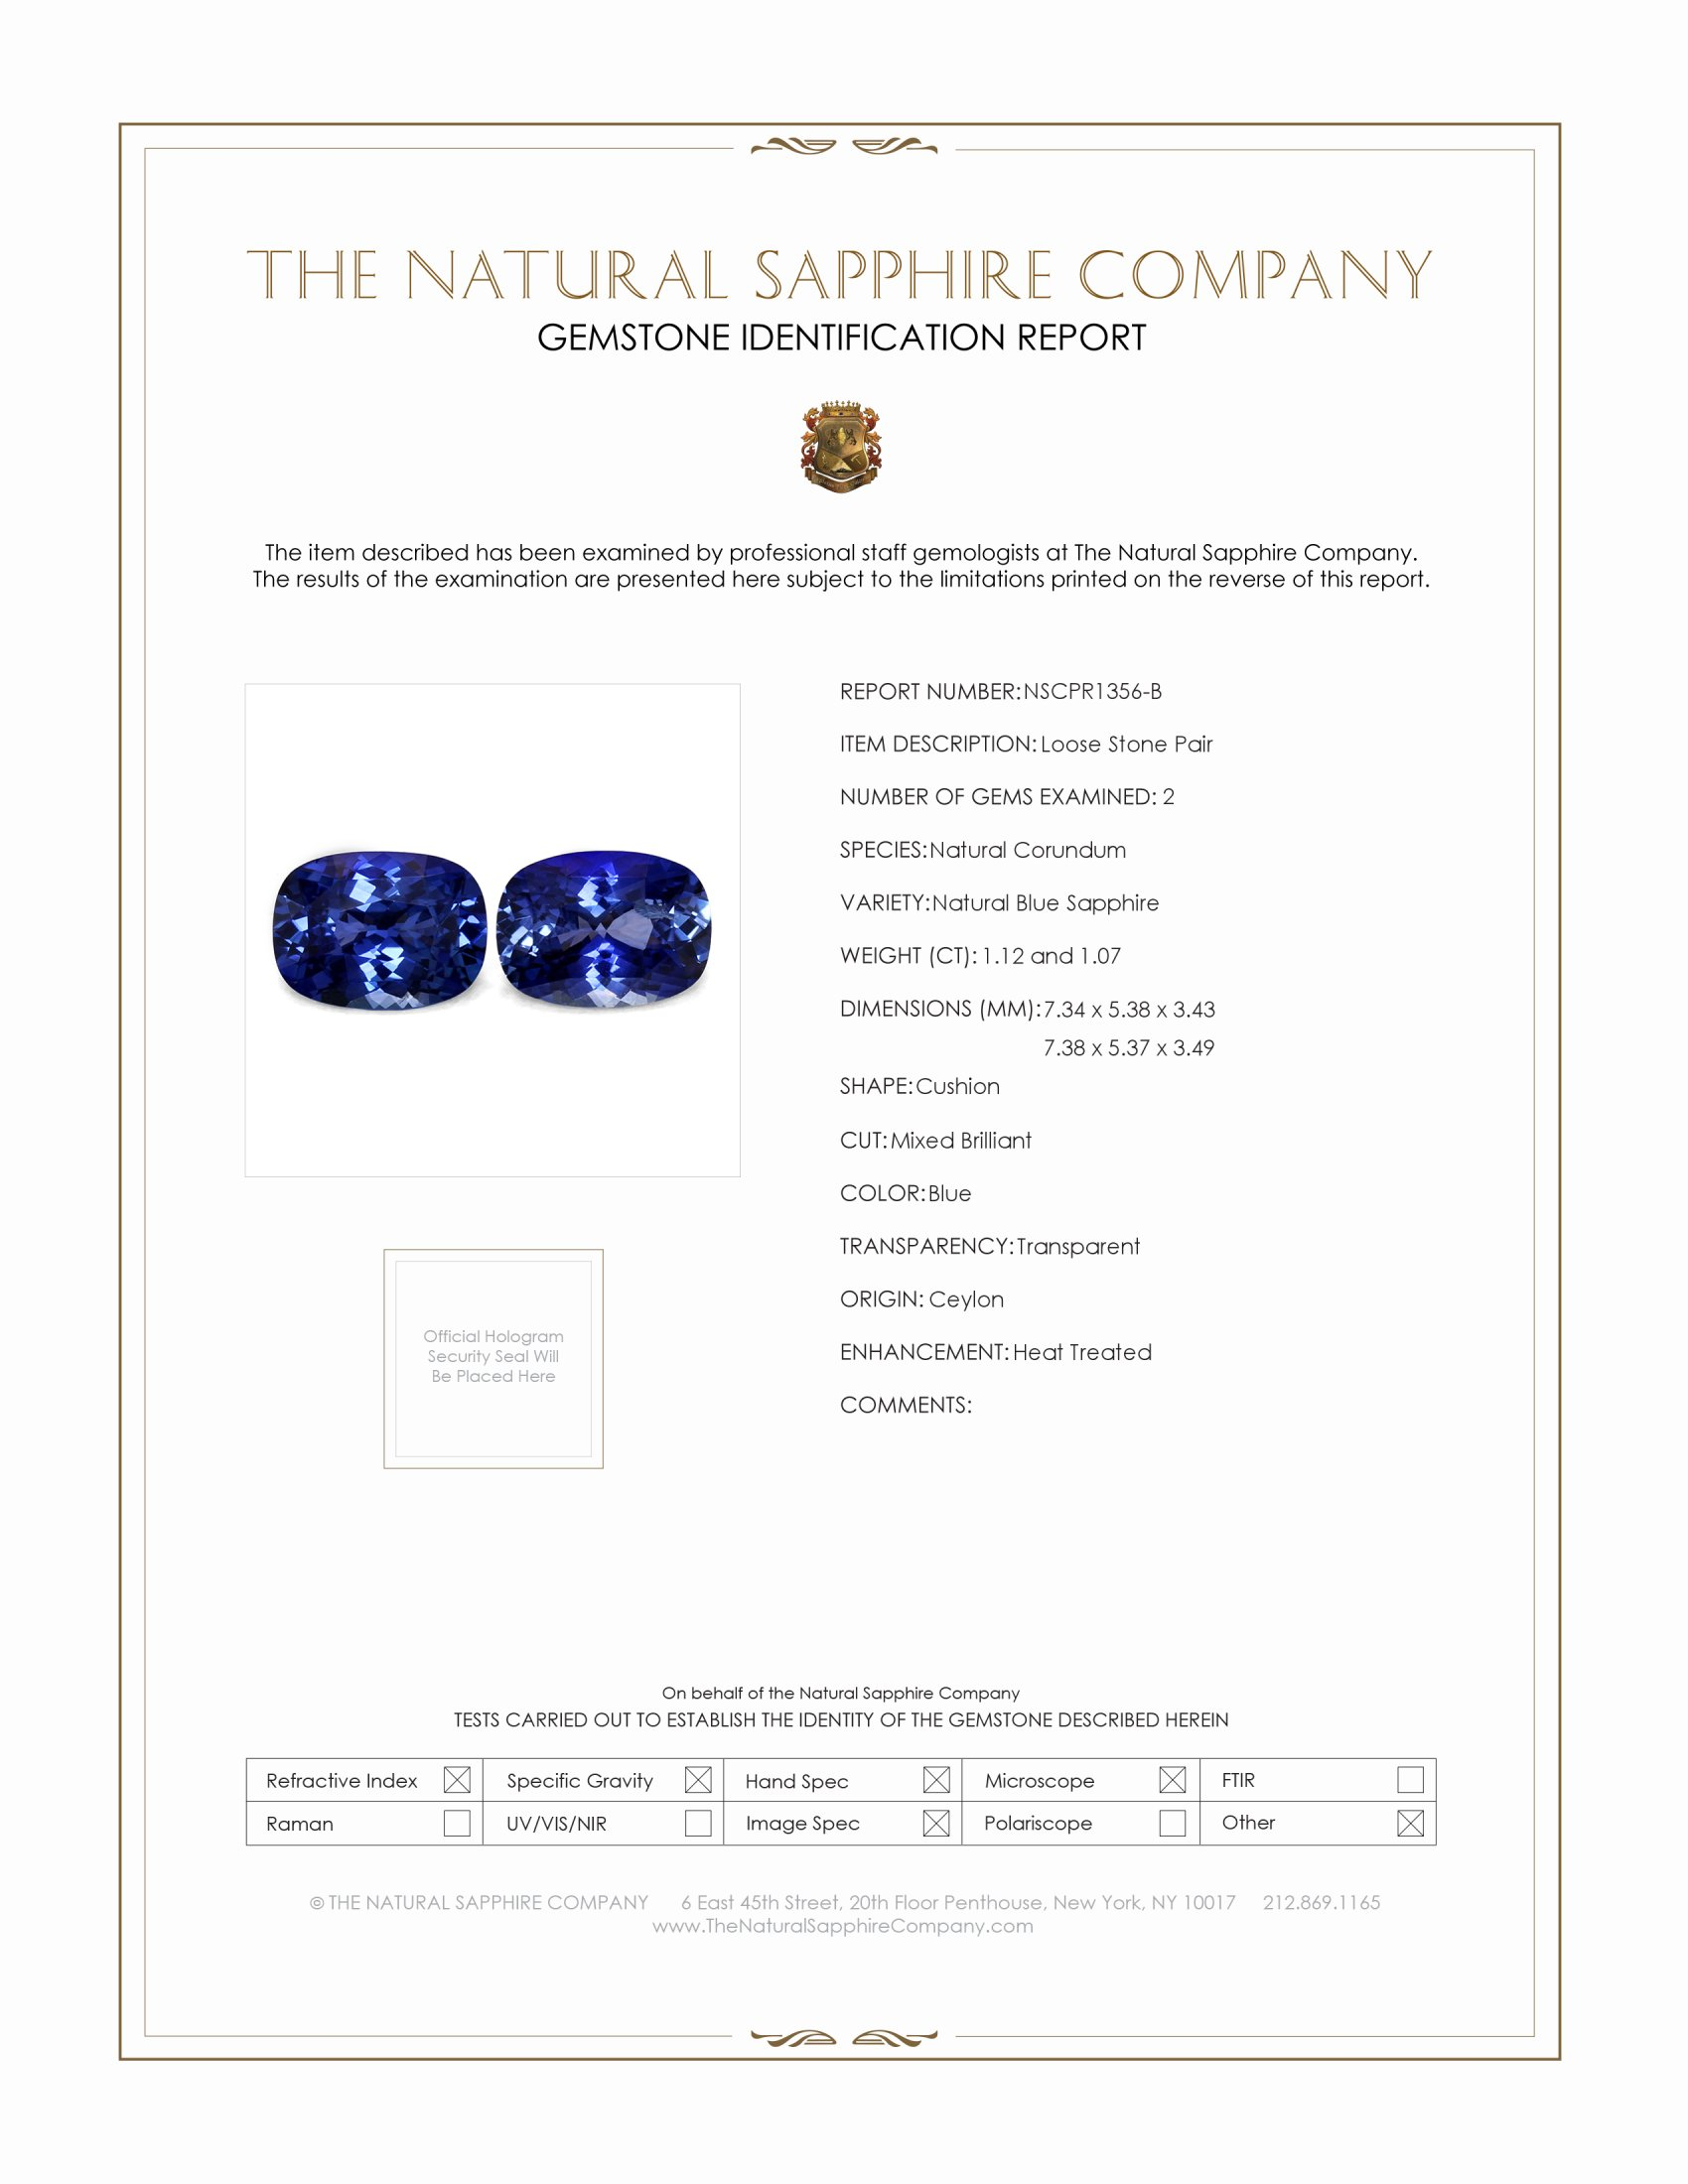 2.19cts Natural Cushion Cut Blue Sapphire Pair PR1356-B Certification